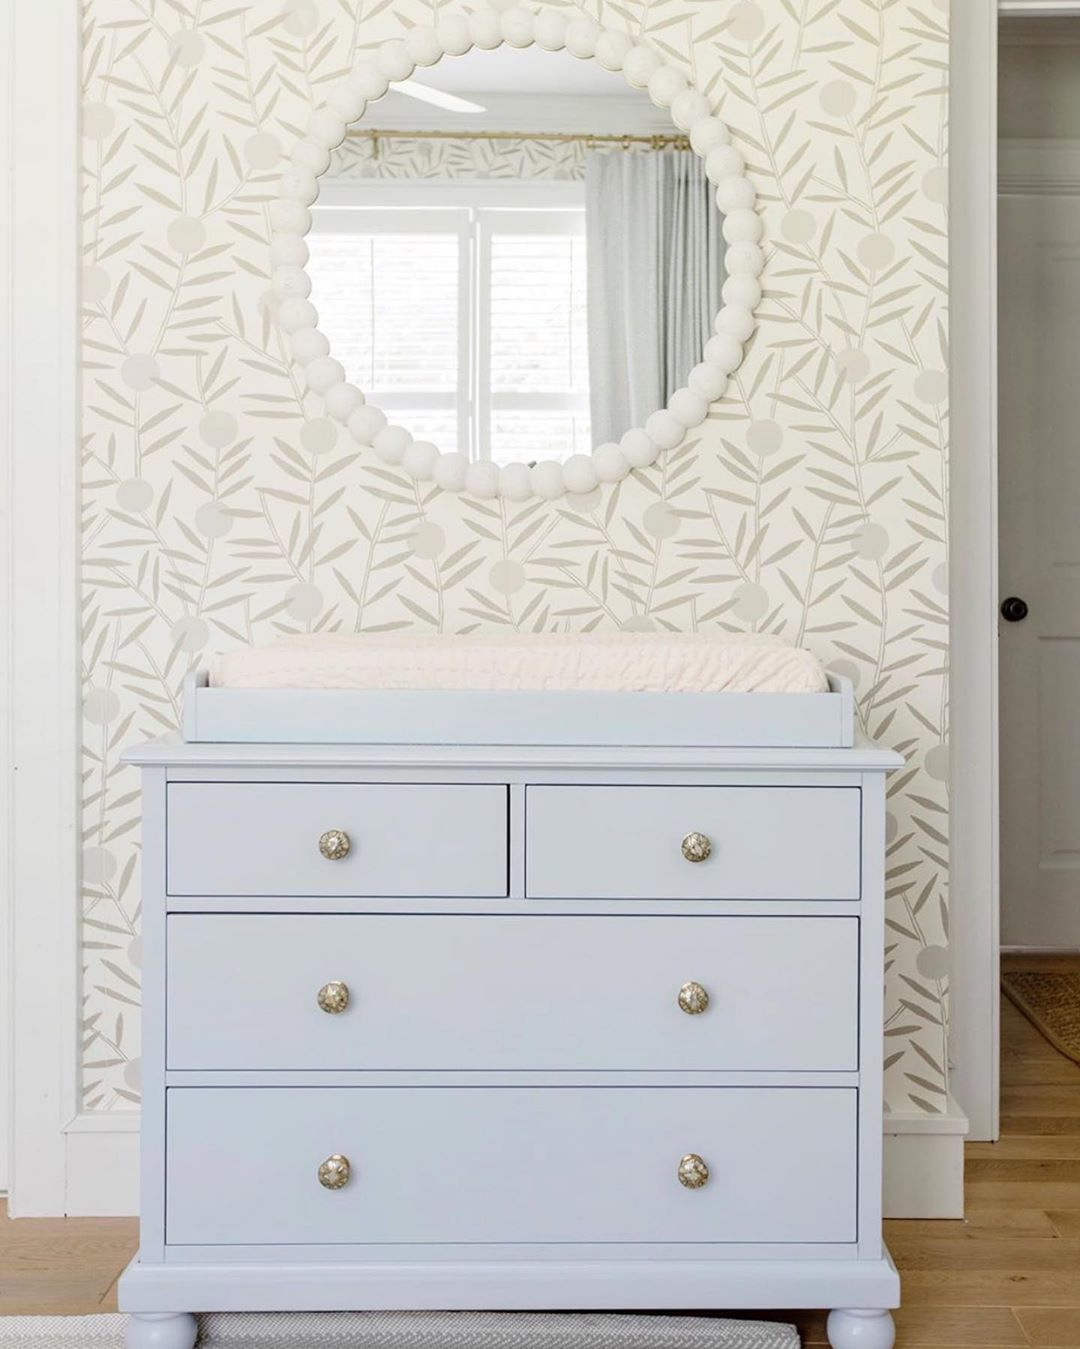 Bloom Taupe wallpaper | Emily Isabella | Hygge & West